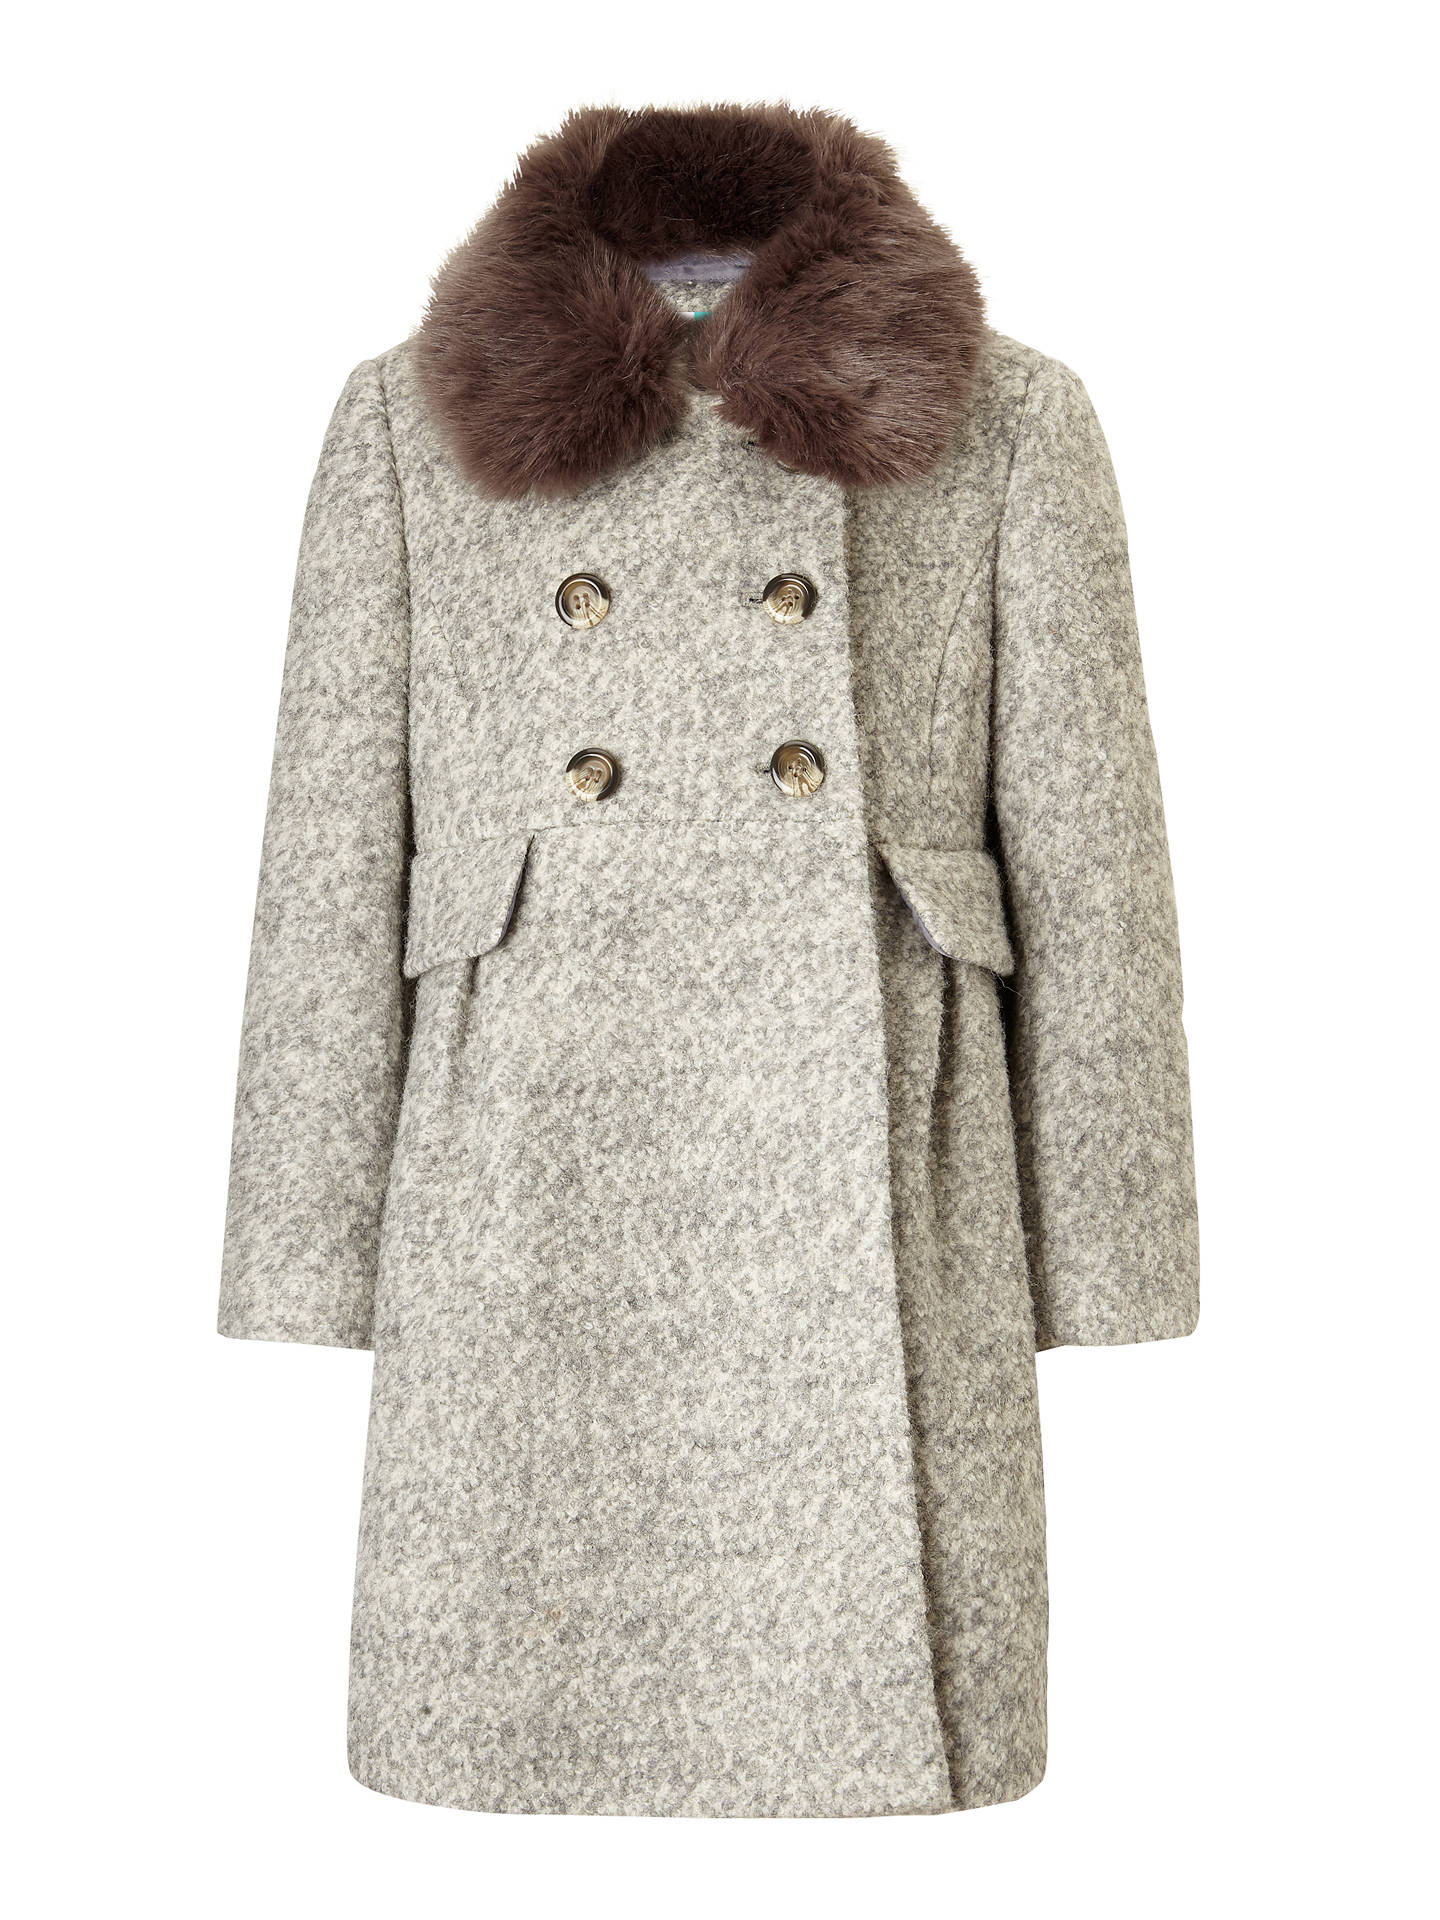 300b0746f86 Buy John Lewis Girls' Formal Coat, Grey, 3 years Online at johnlewis.